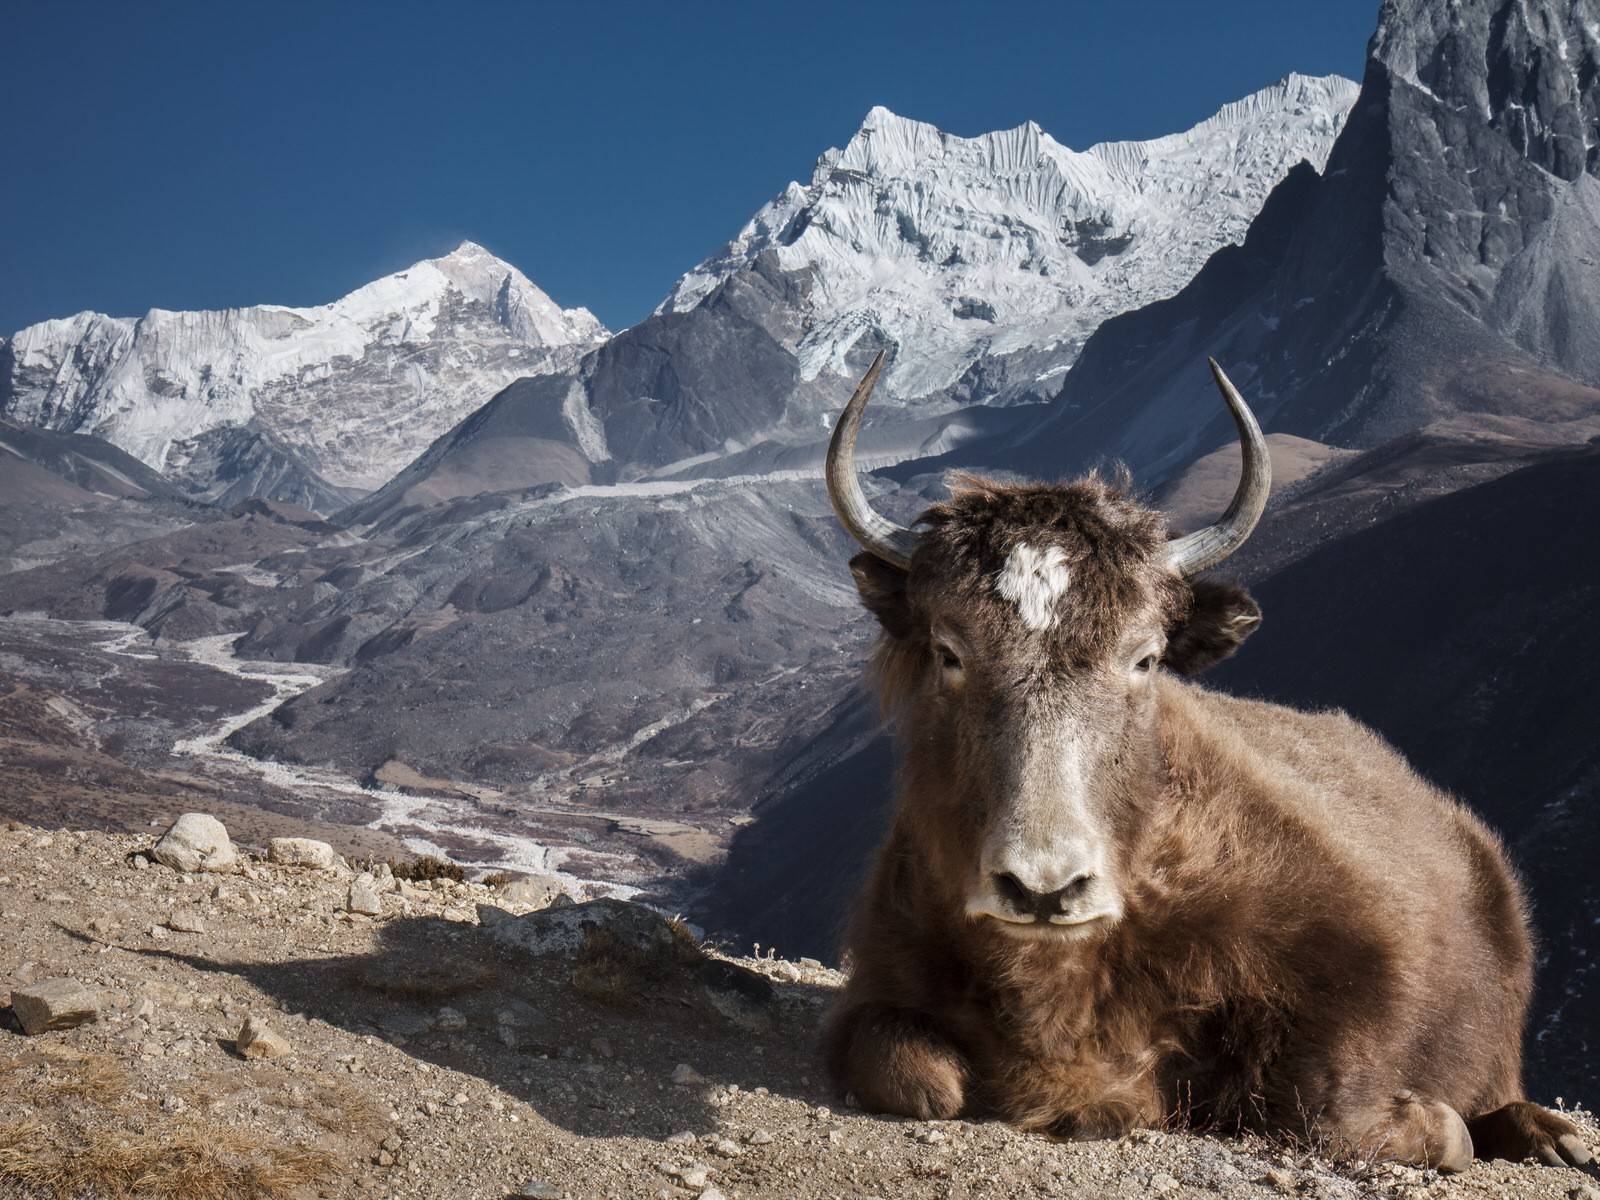 Returning to Everest: trekking to Base Camp after the 2015 earthquake